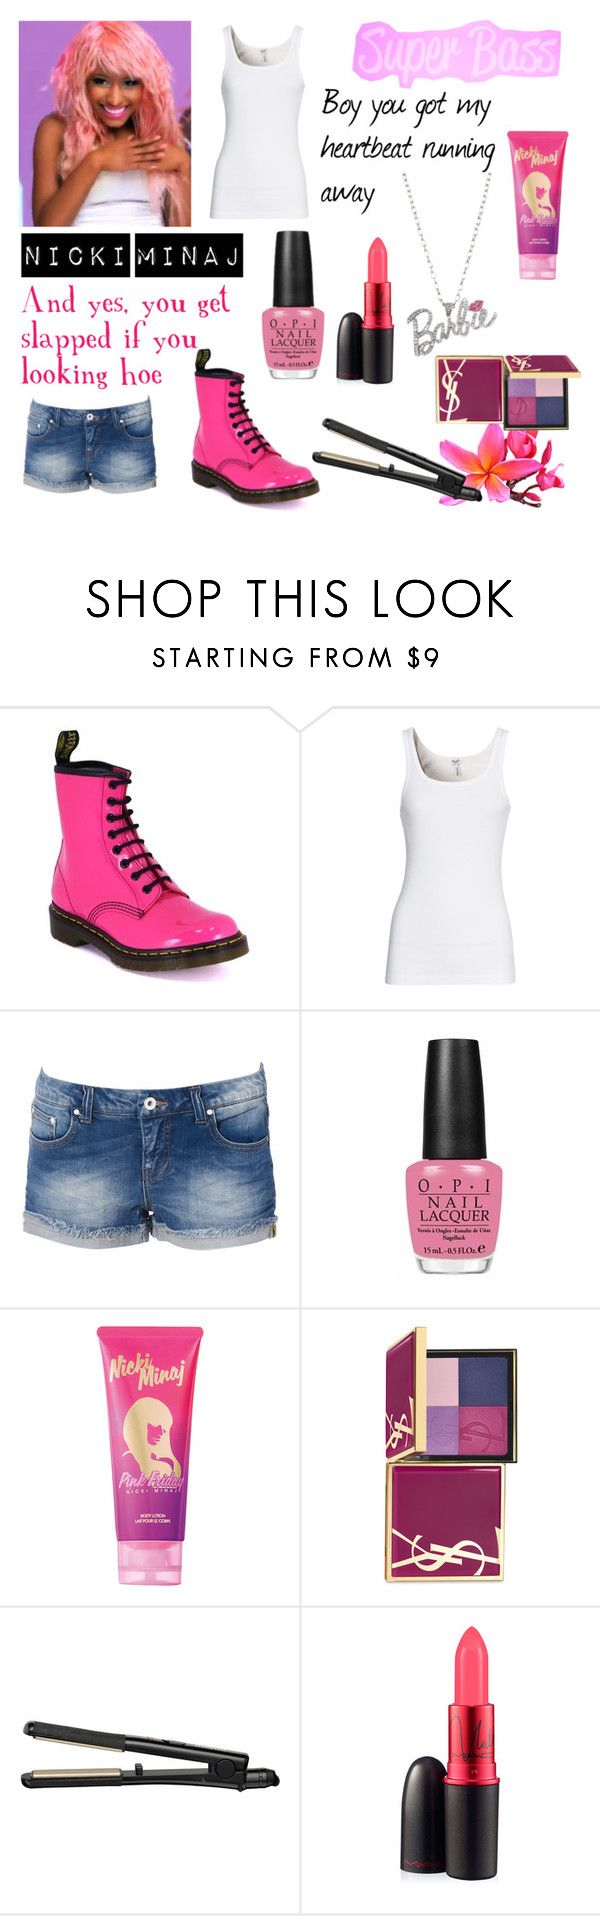 """Nicki Minaj 'Super Bass' inspired outfit"" by iqafiqaah ❤ liked on Polyvore featuring Nicki Minaj, Dr. Martens, Splendid, Vero Moda, OPI, Yves Saint Laurent, BaByliss and MAC Cosmetics"